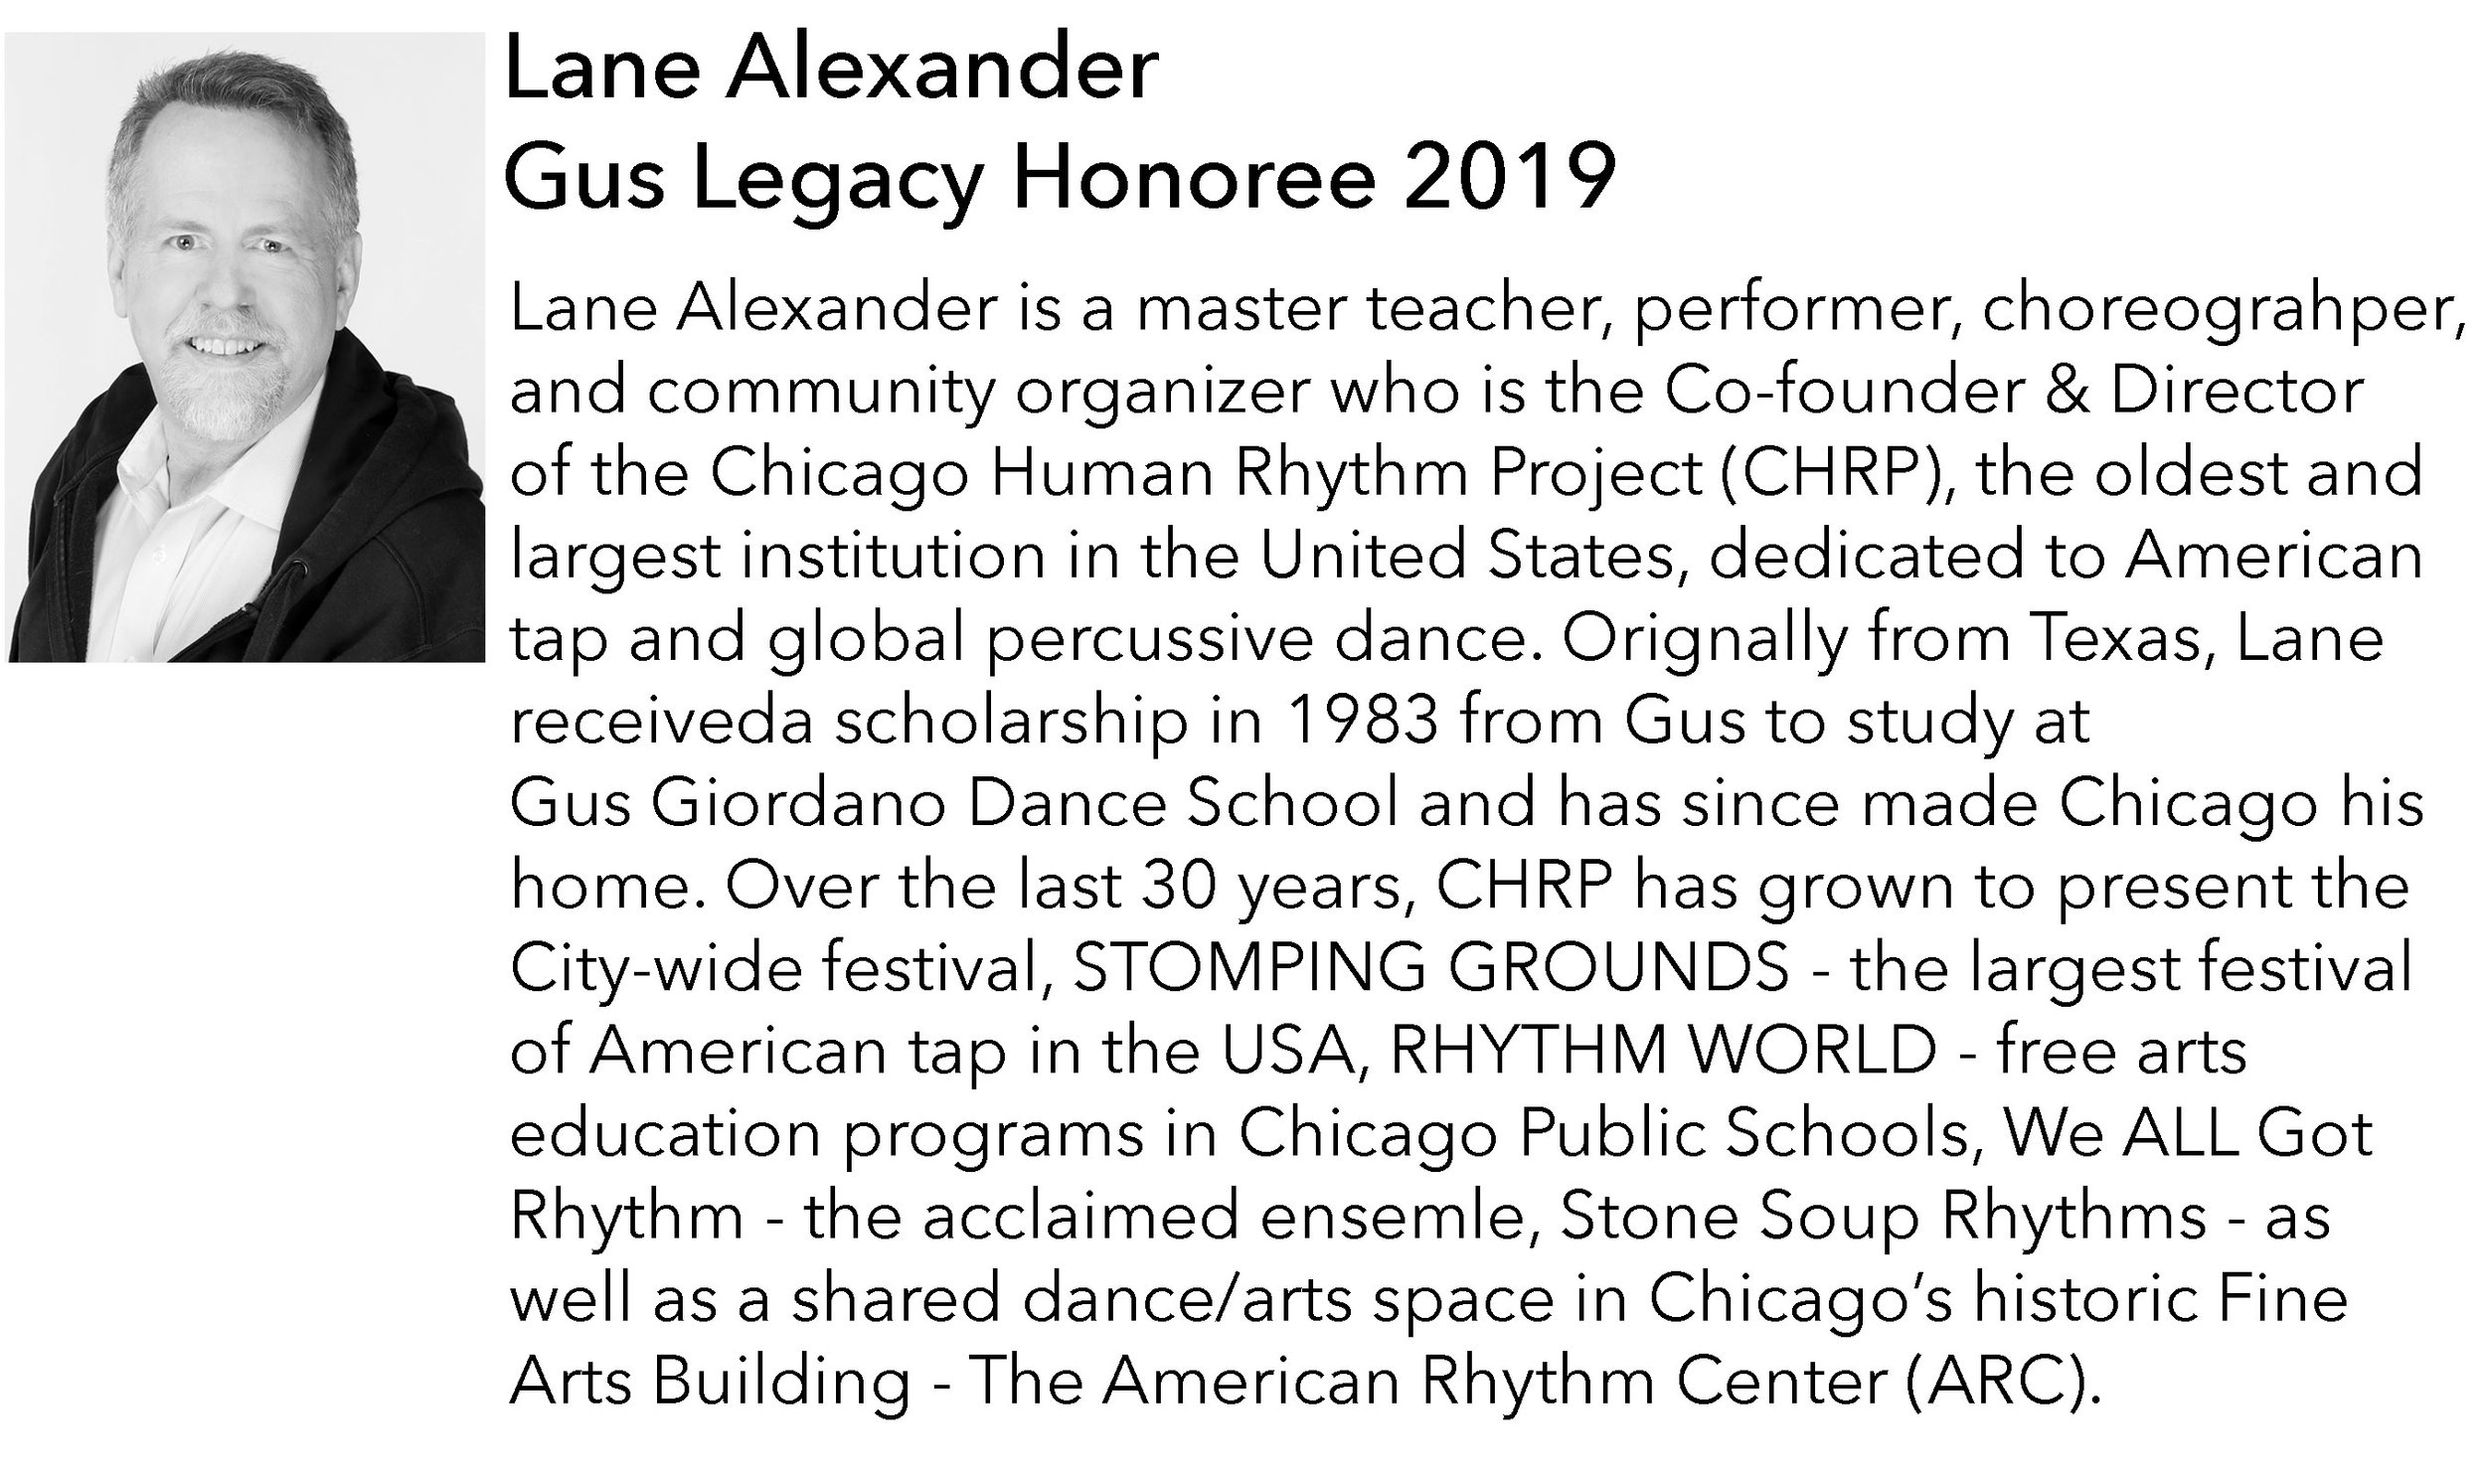 Lane Alexander, Gus Legacy Foundation Honoree